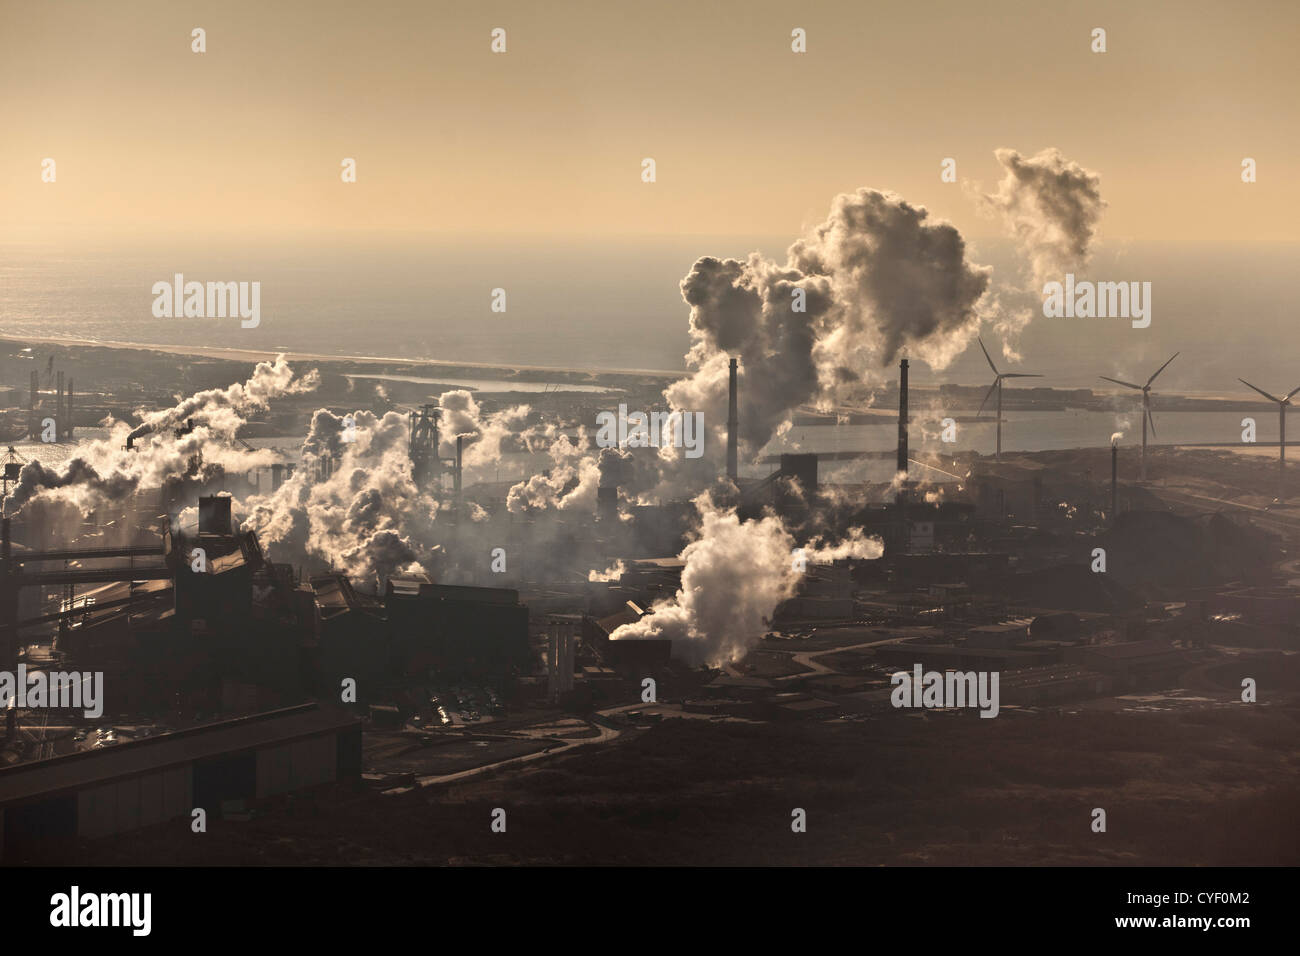 The Netherlands, Ijmuiden, TATA Steel factory. Aerial. - Stock Image